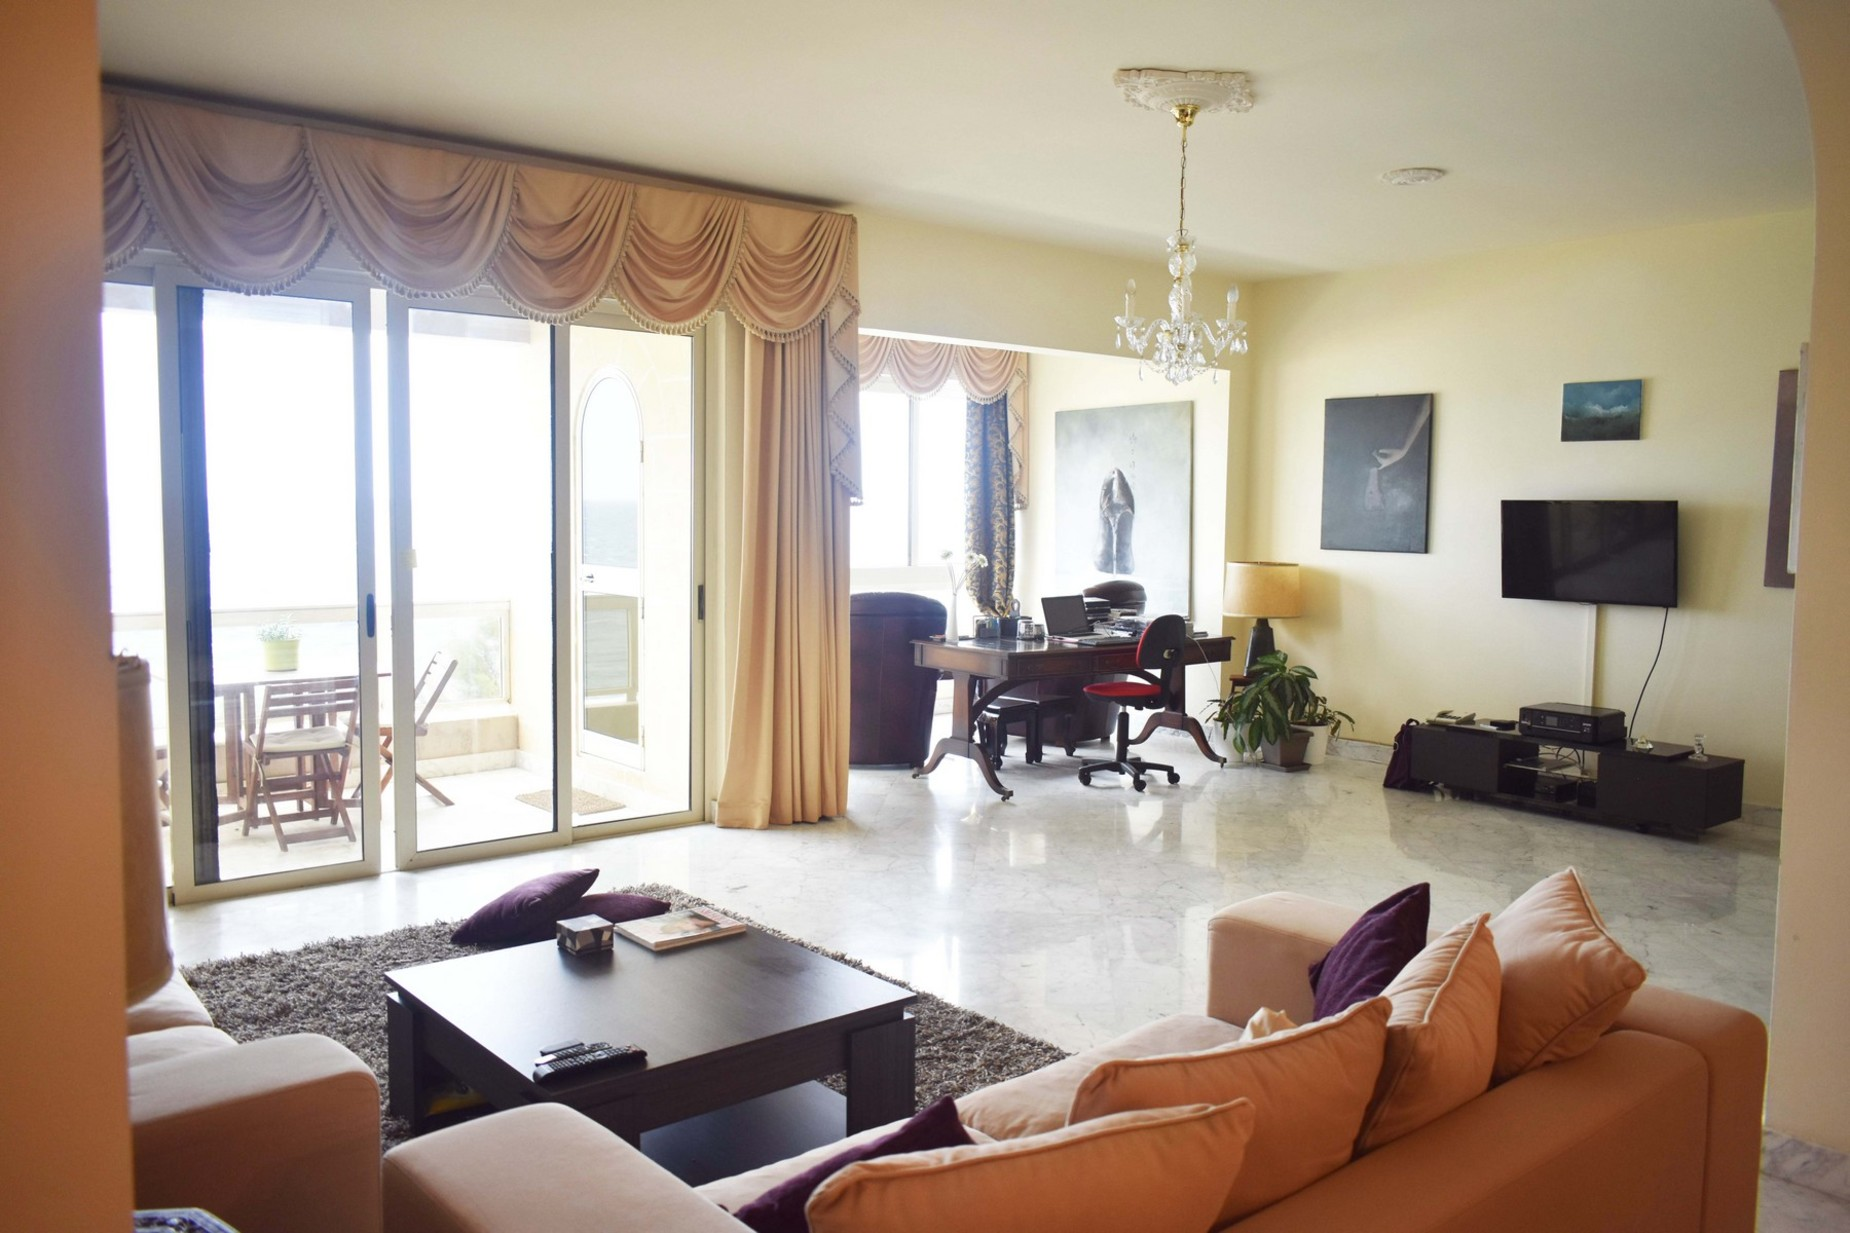 3 bed Apartment For Rent in Sliema, Sliema - thumb 5